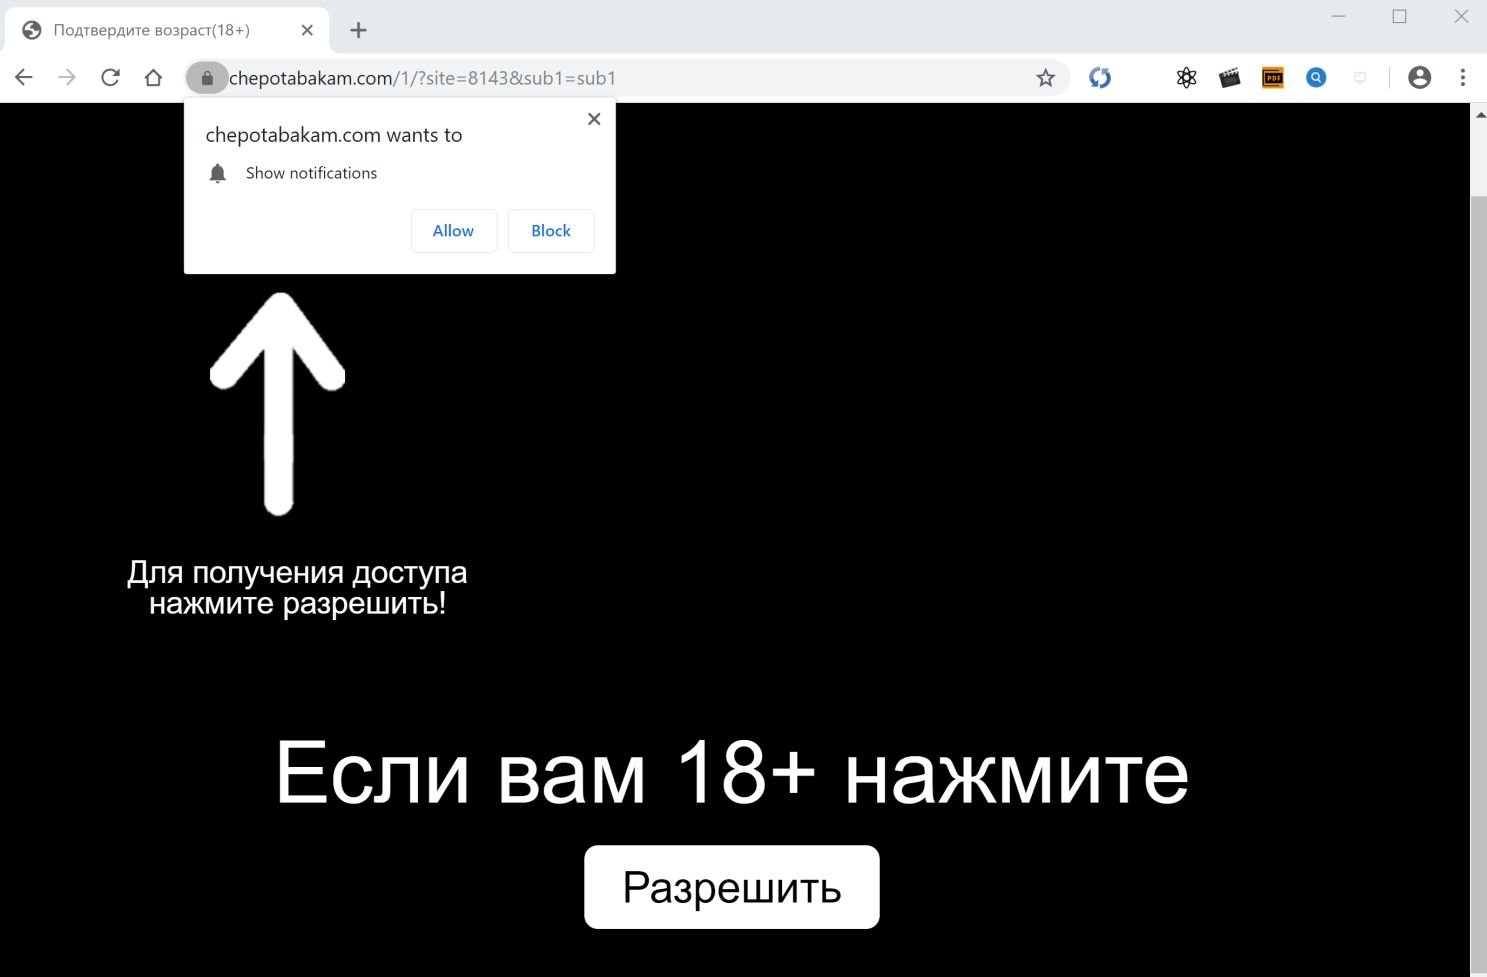 Image: Chrome browser is redirected to Chepotabakam.com